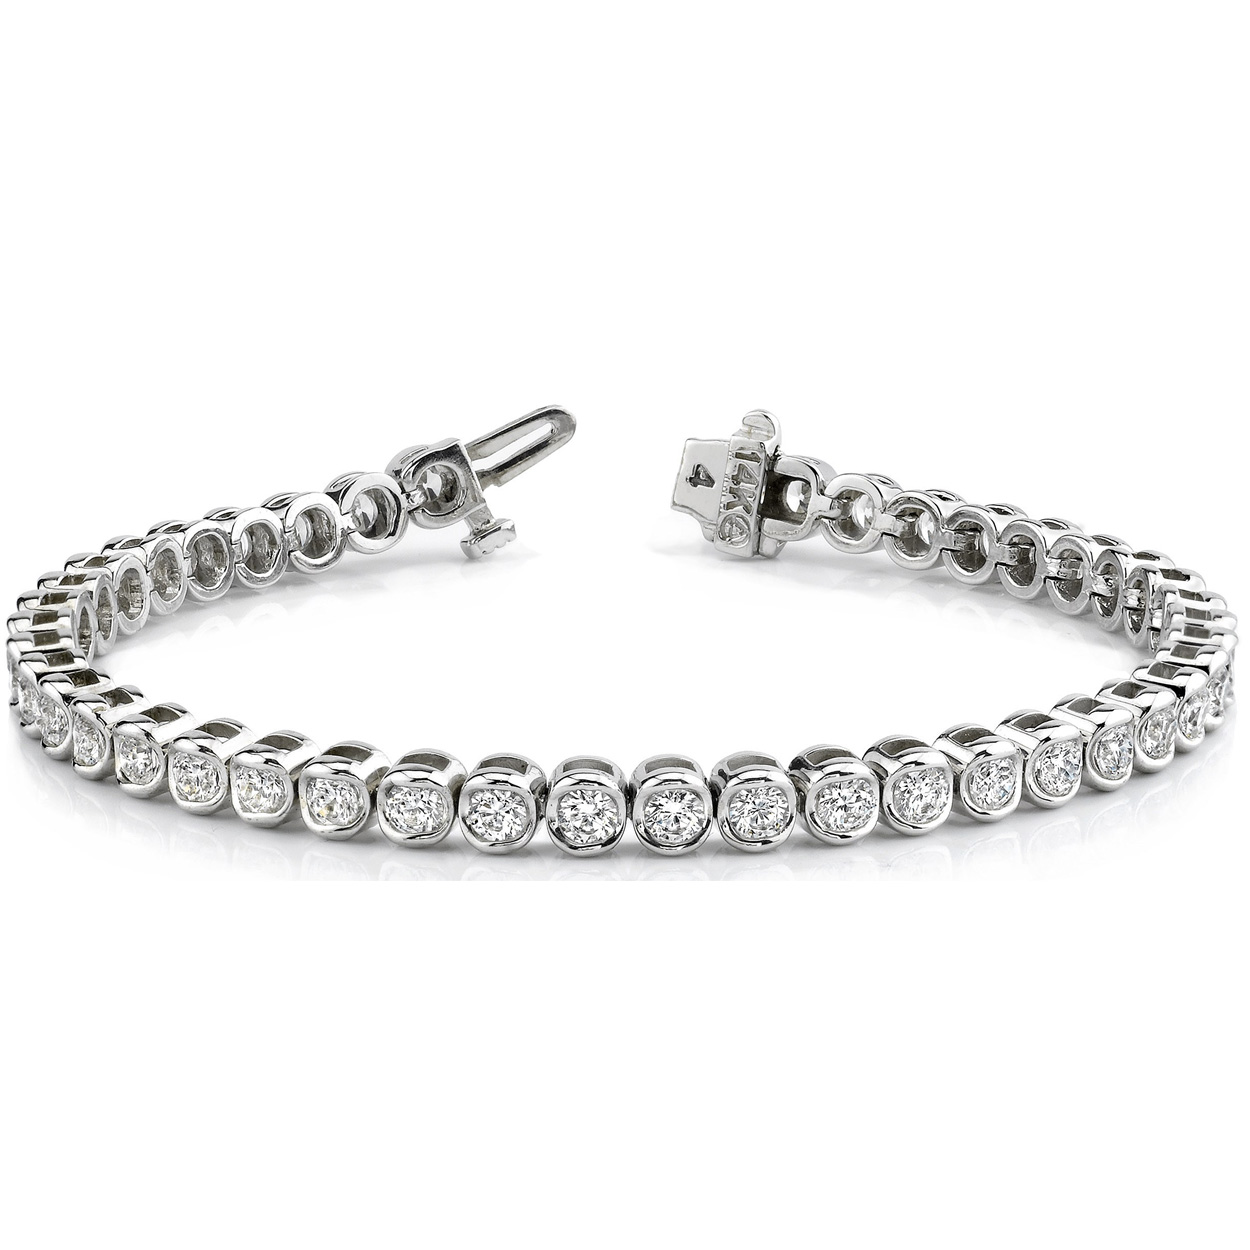 Bracelet diamants 2.00 carat en or 14K ou 18K